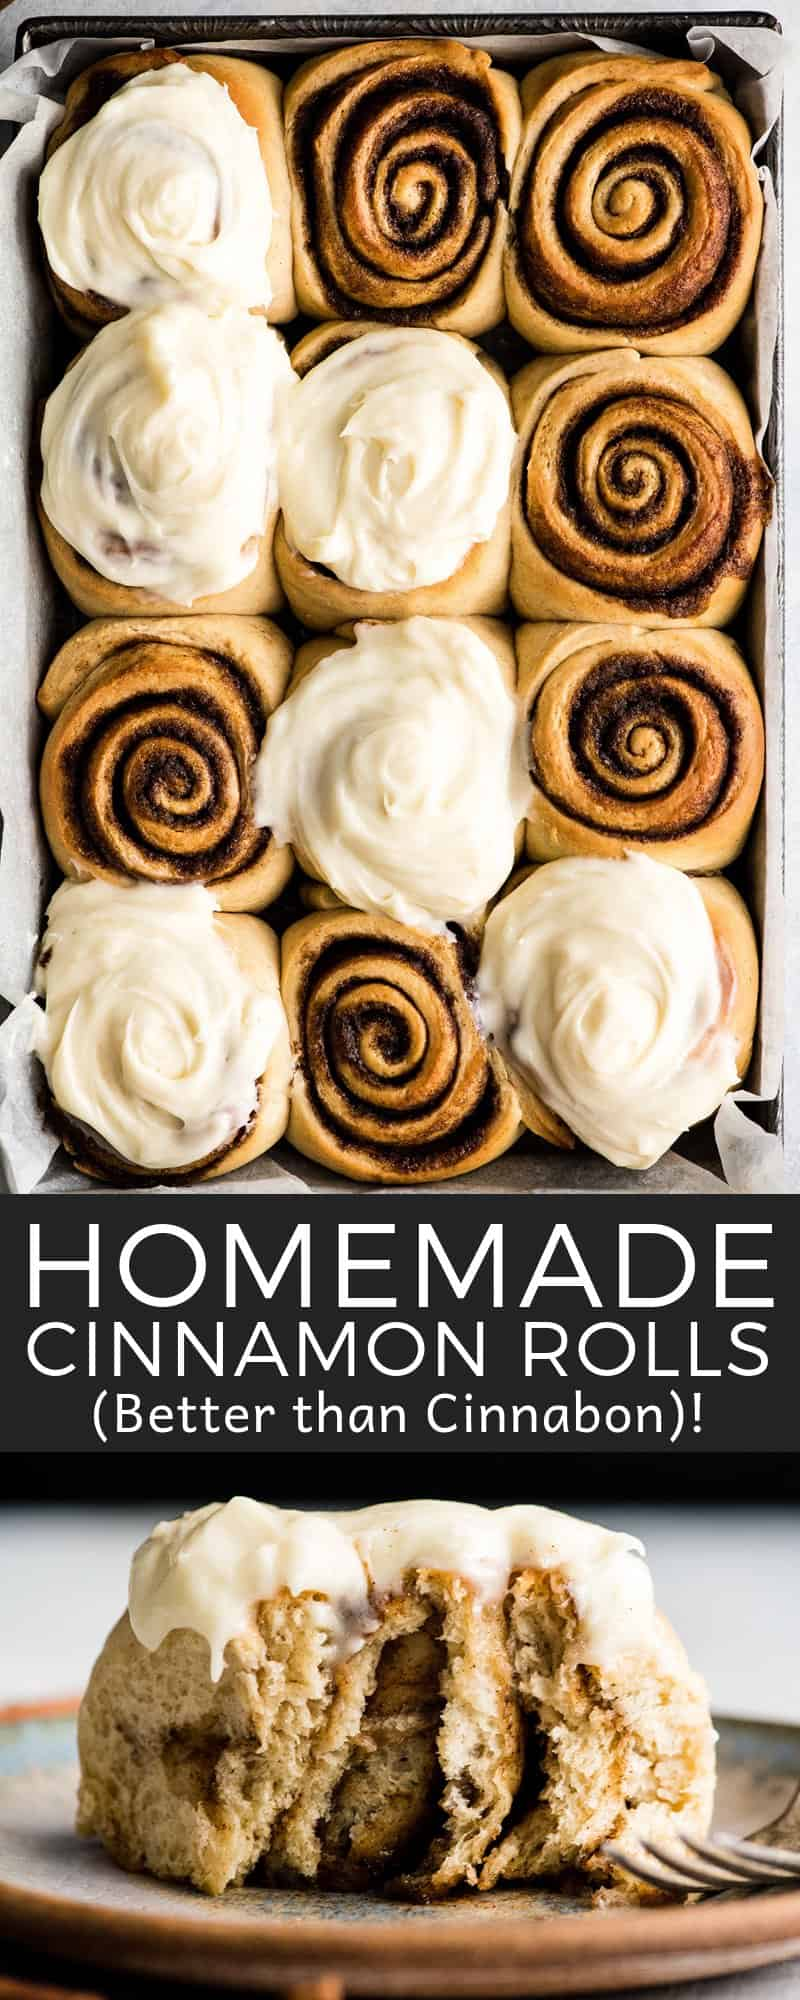 This is the Best Homemade Cinnamon Rolls Recipe EVER! These gooey cinnamon rolls are even better than Cinnabon cinnamon rolls, and are topped with the best cream cheese frosting! They're easy to make and can be prepared the day before and left to rise overnight in the refrigerator. #cinnamonrolls #breakfast #cinnabon #bestcinnamonrolls #baking